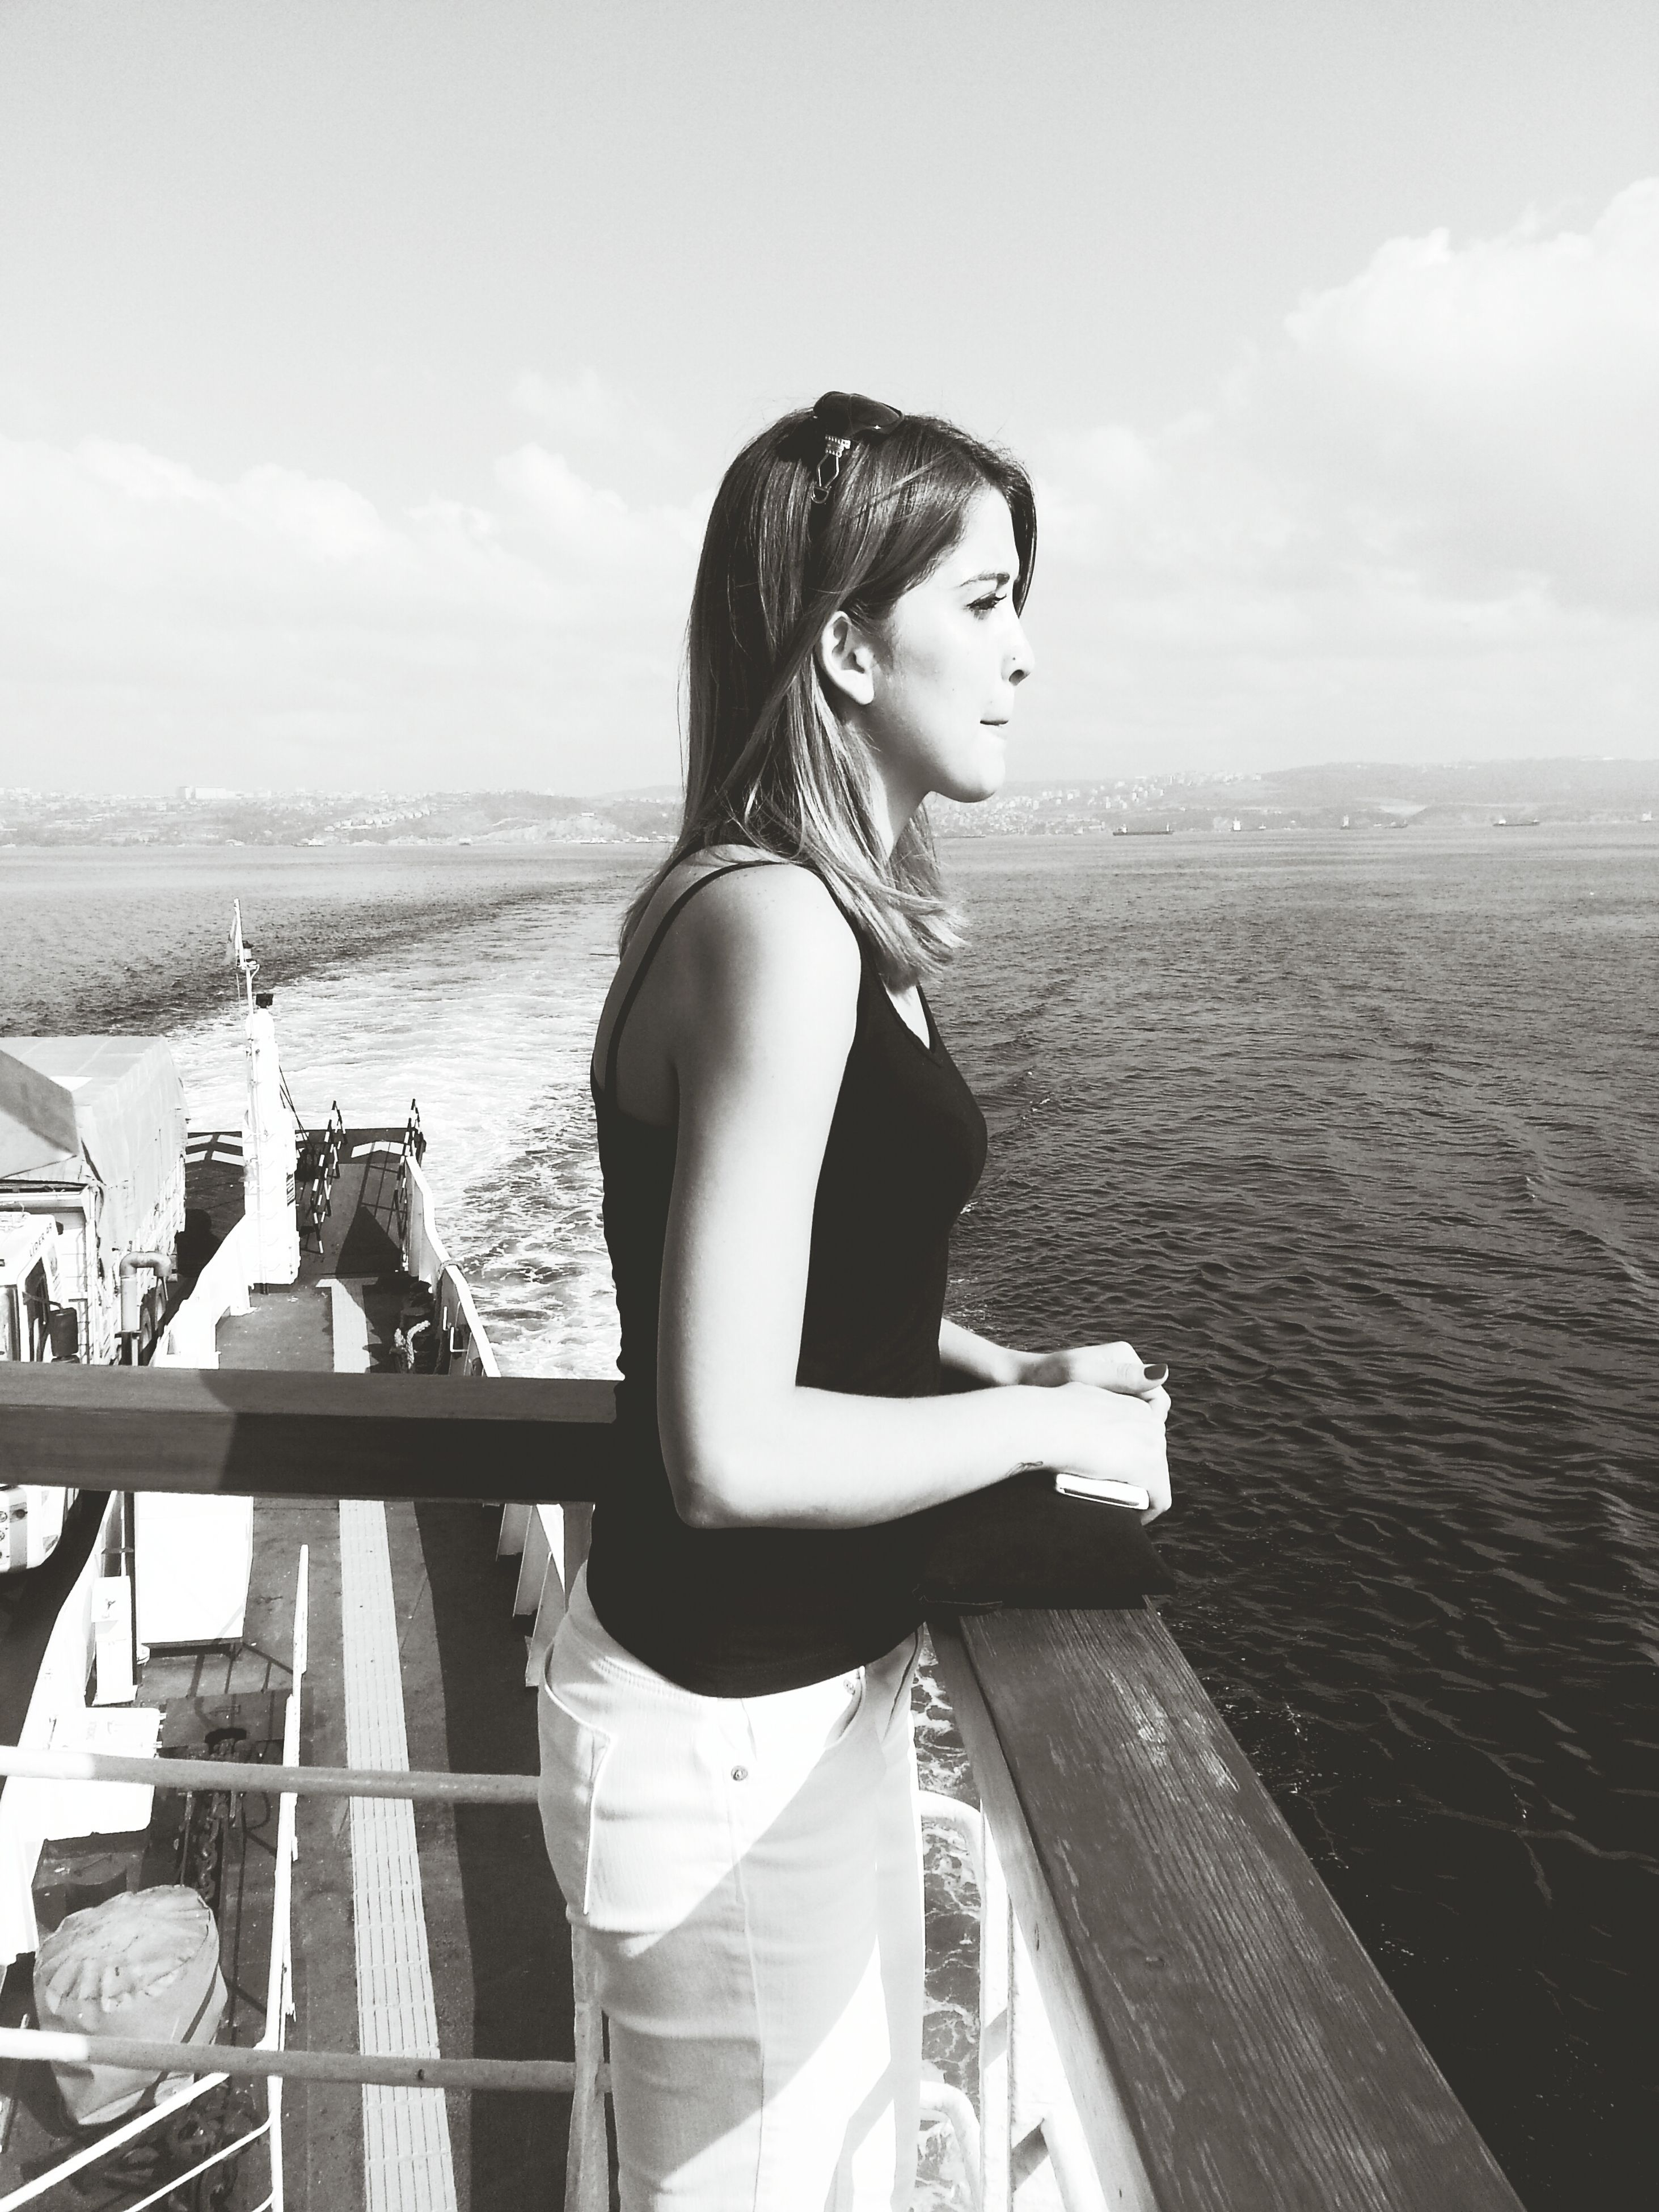 sea, water, sky, young adult, lifestyles, leisure activity, horizon over water, casual clothing, rear view, standing, young women, person, sitting, long hair, full length, beach, three quarter length, railing